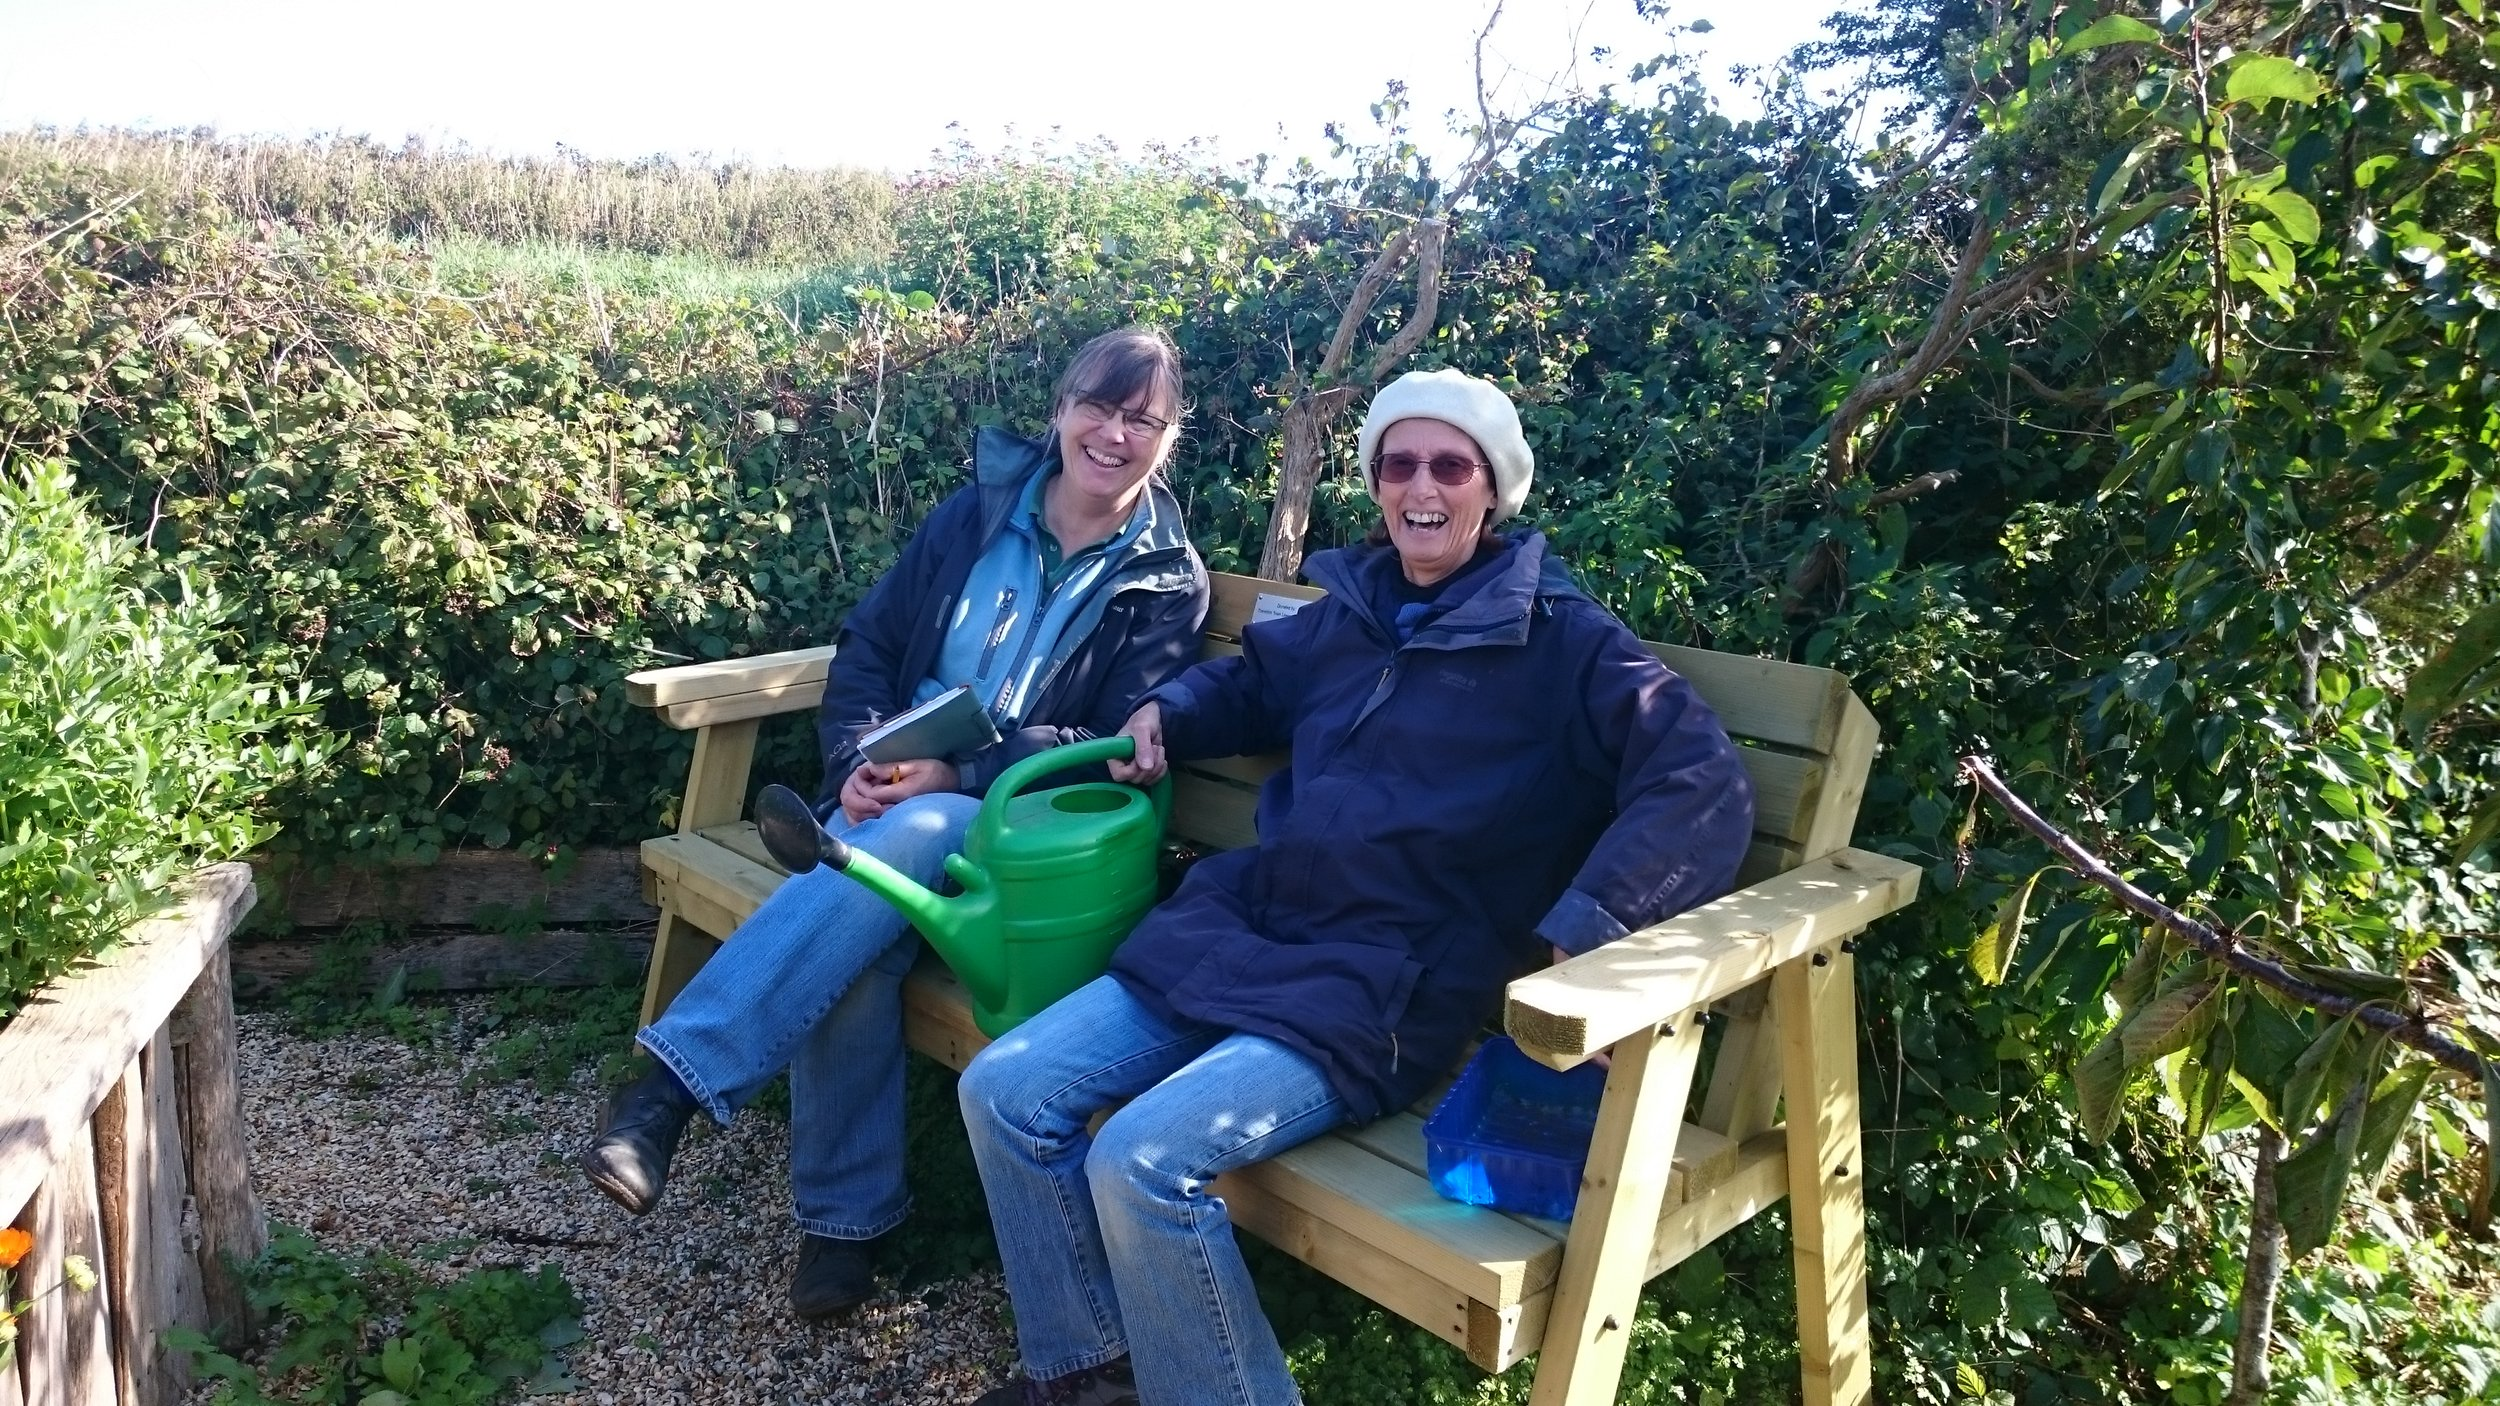 Sarah and Felicity Ann enjoy the new bench